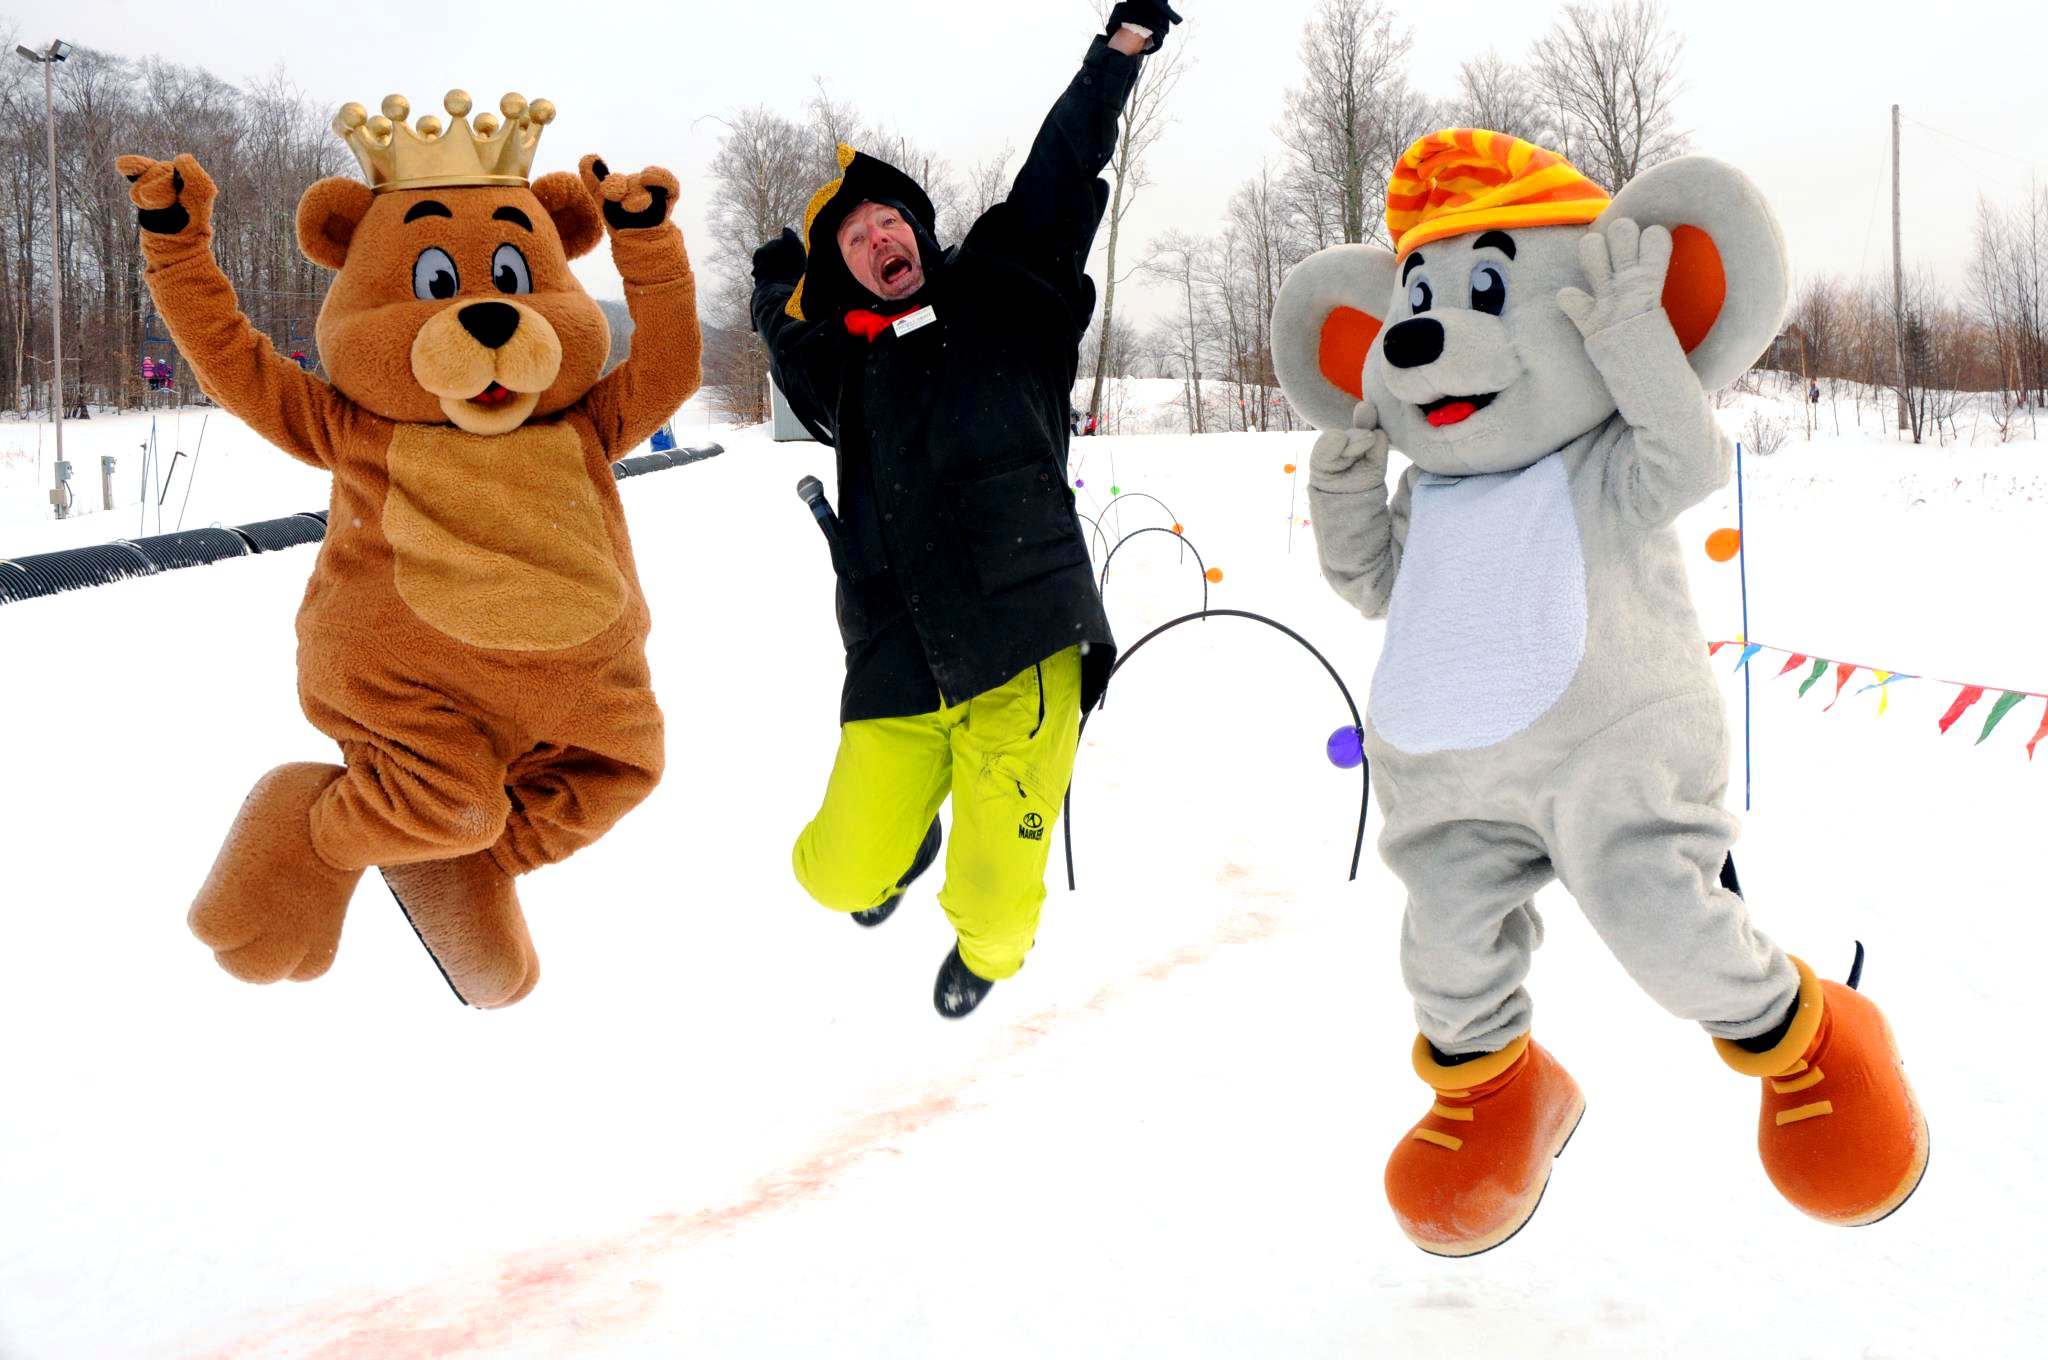 Two mascots jumping in the snow